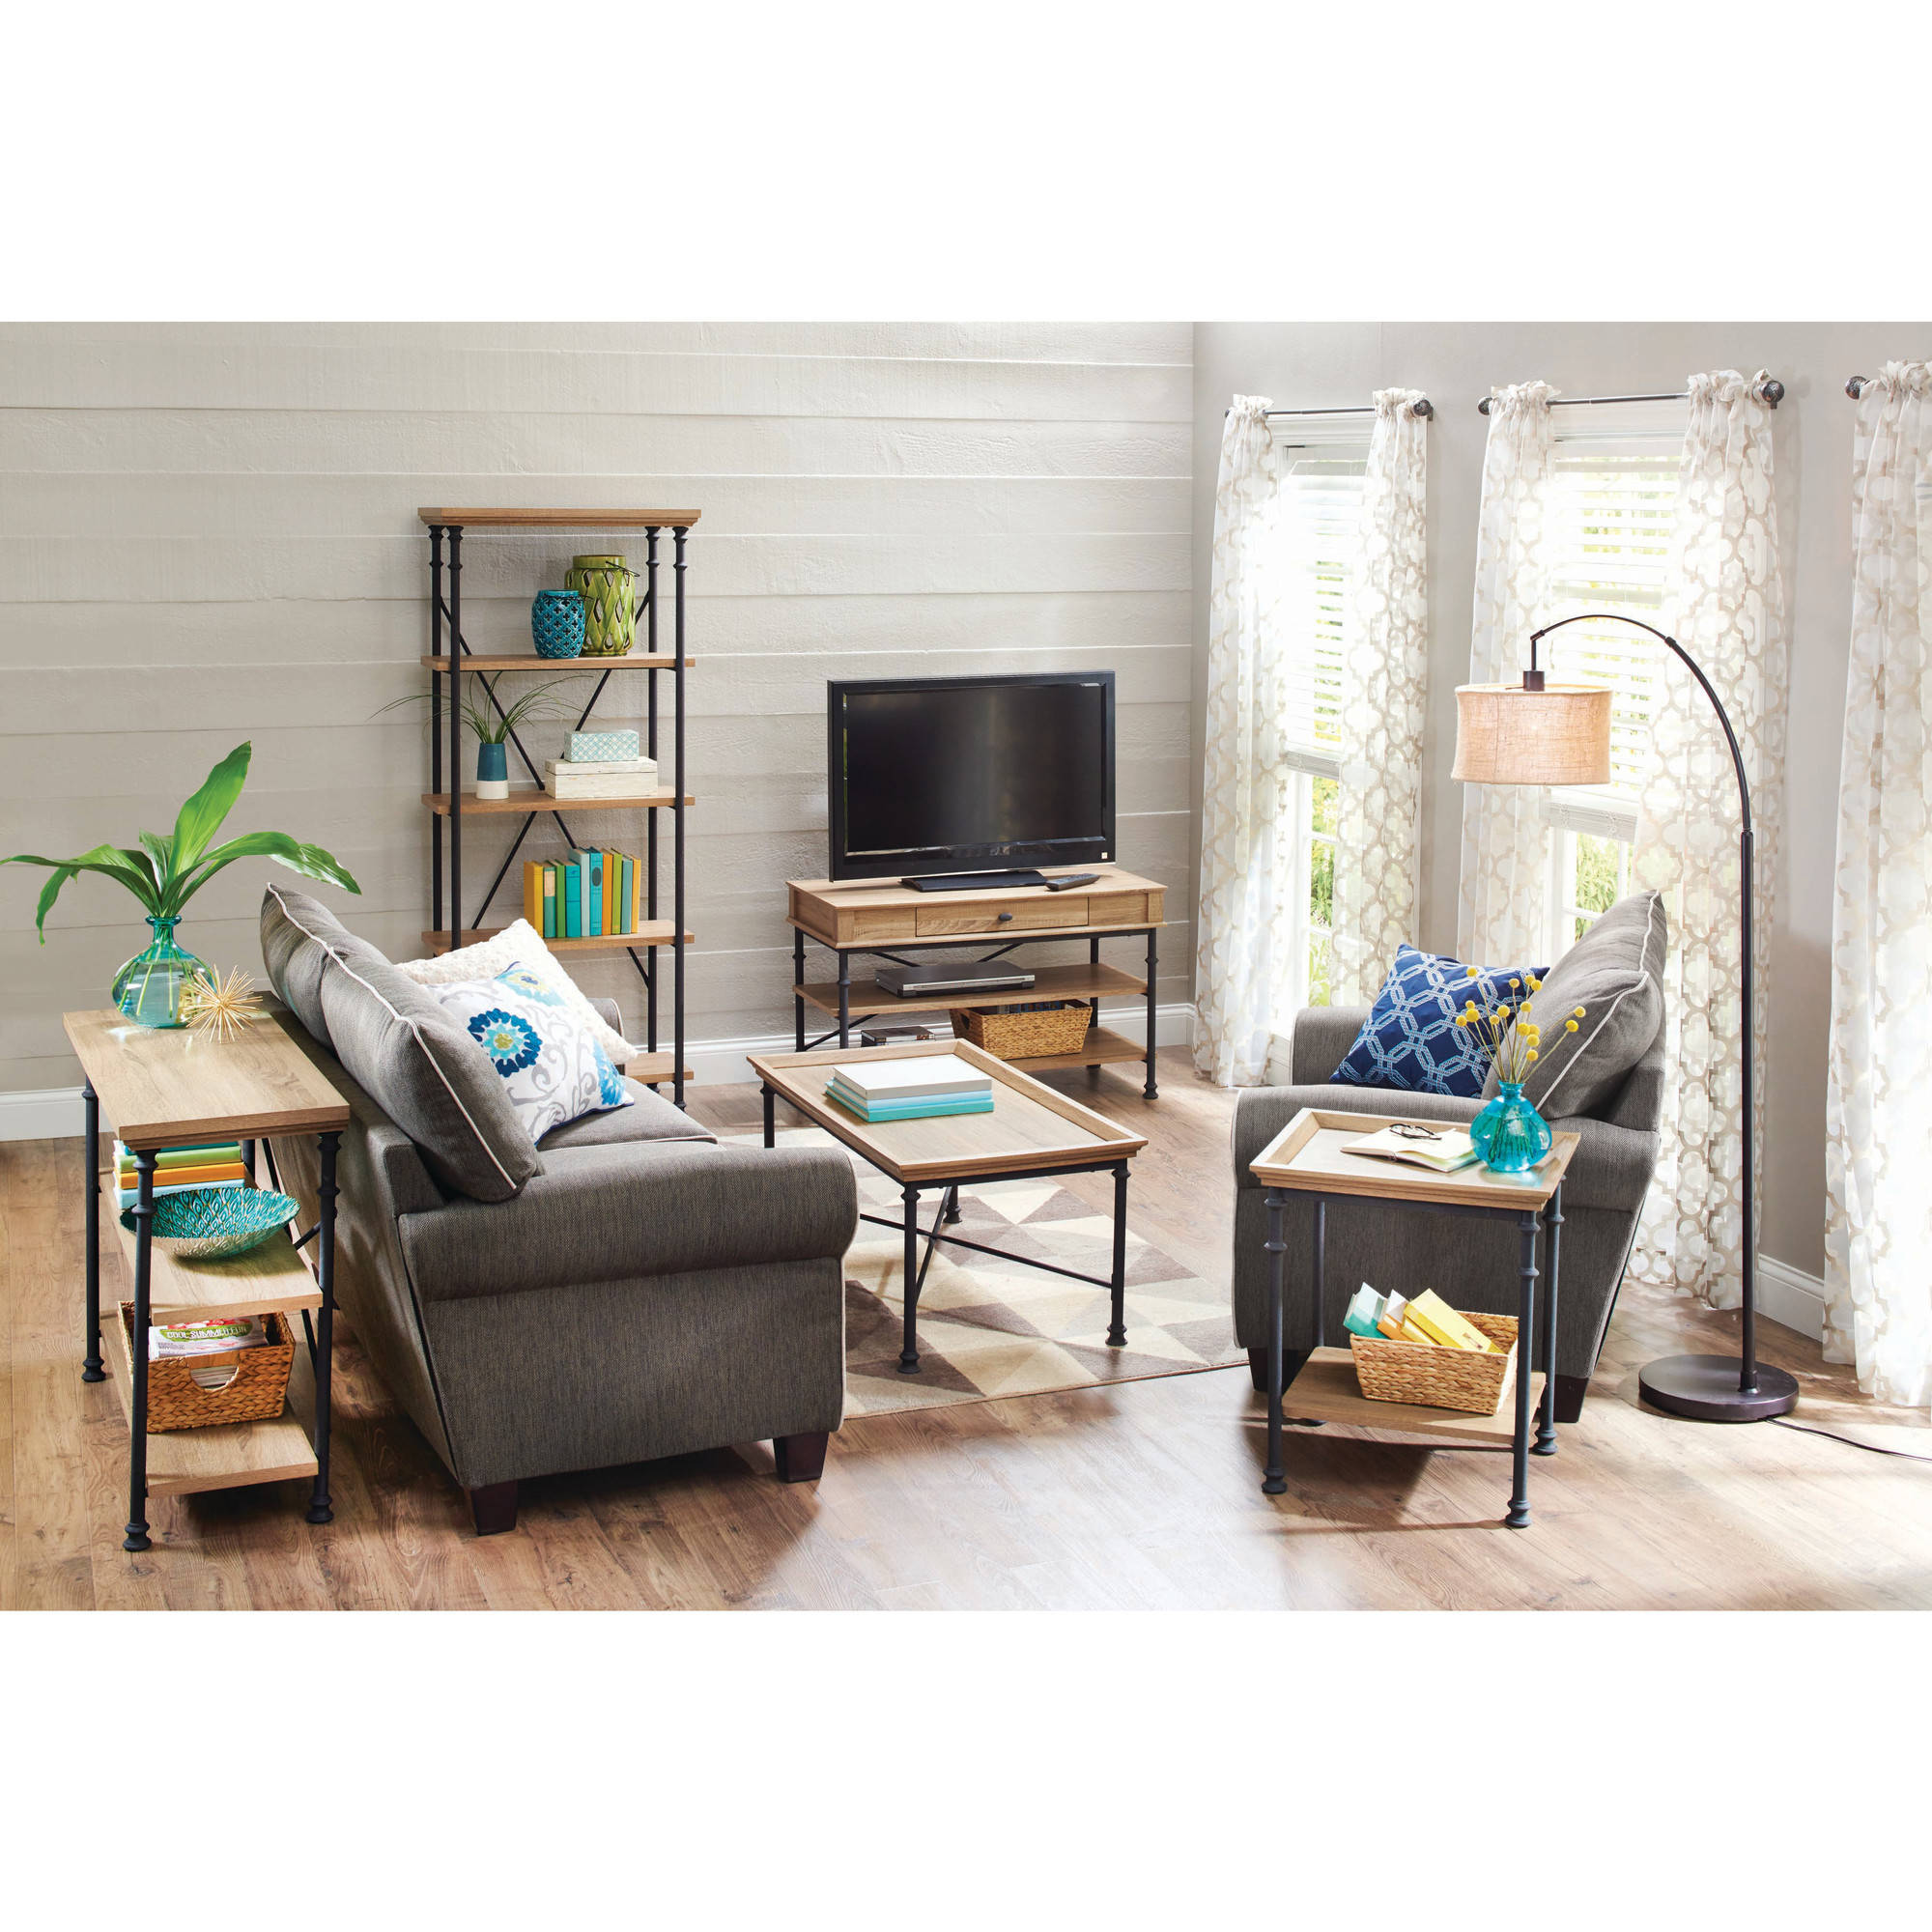 Better homes and gardens river crest furniture collection - Better home and garden furniture ...